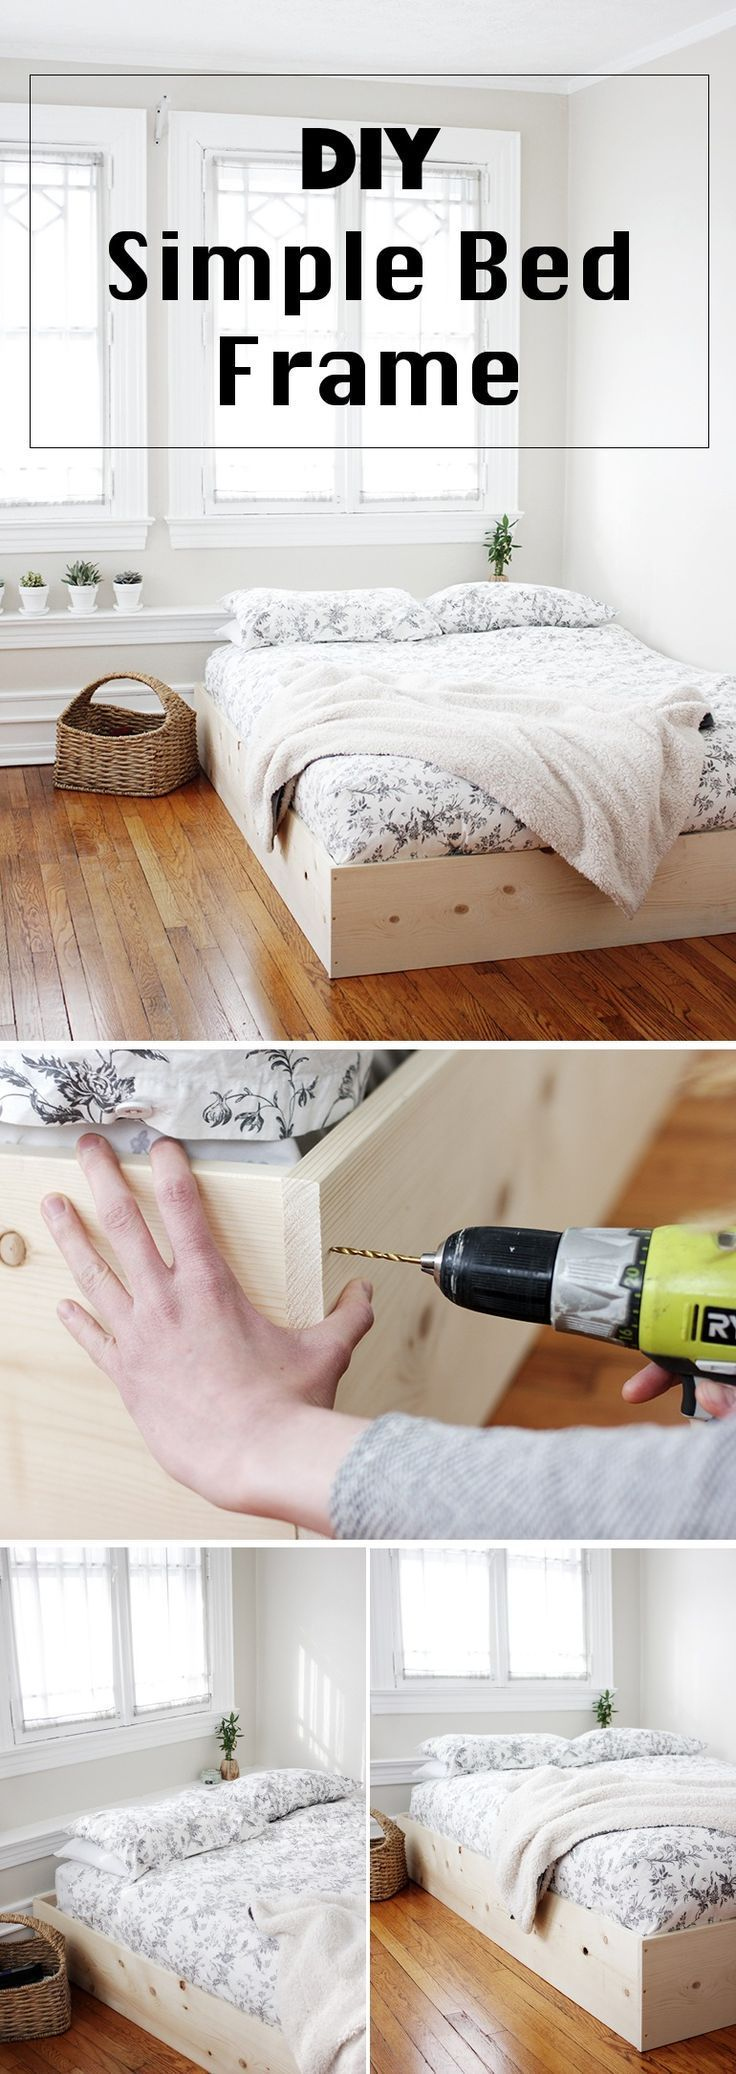 DIY Simple Bed Frame #diybedframesideas